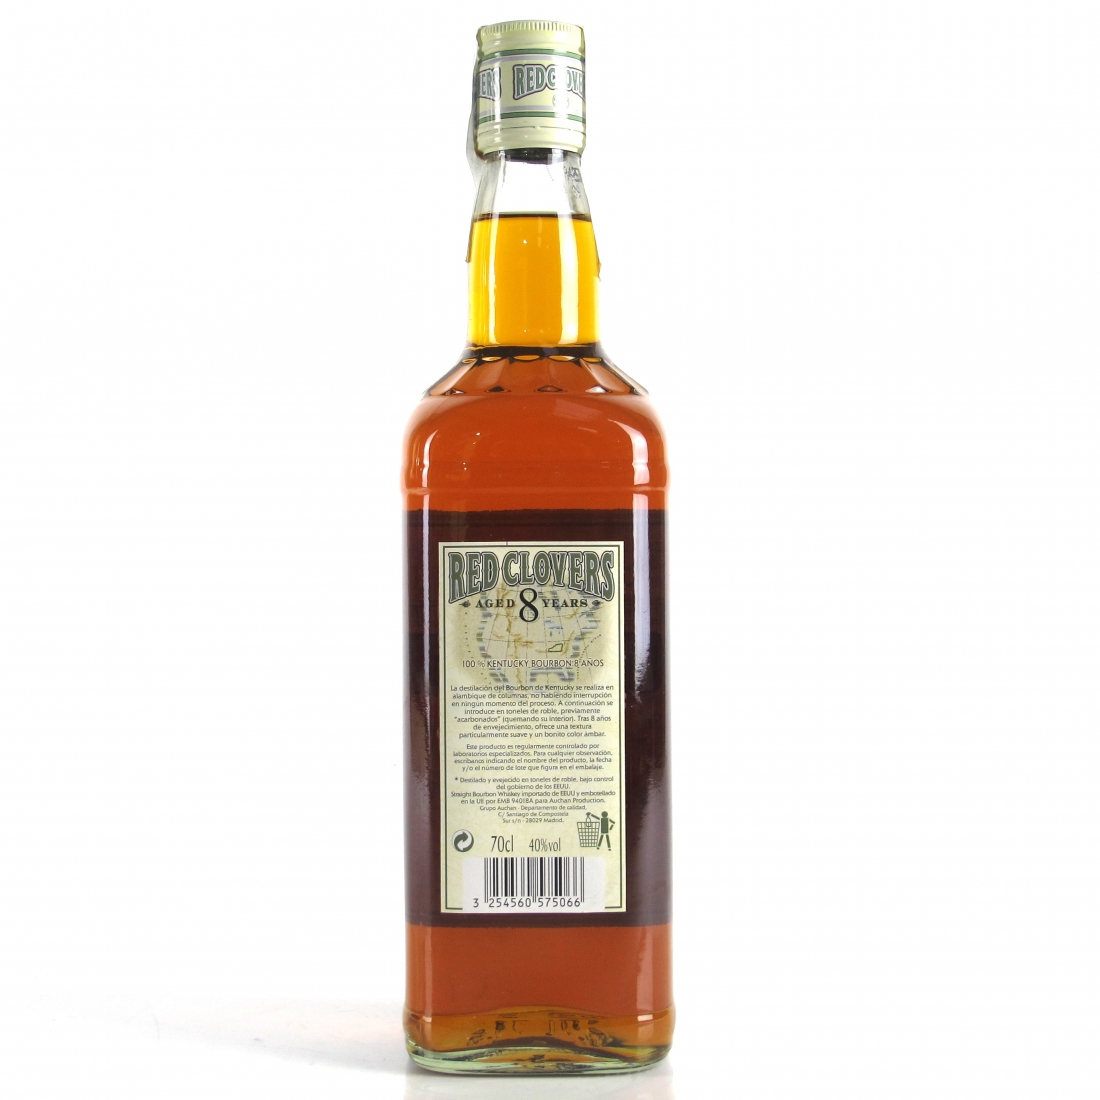 Red Clovers 8 Year Old Kentucky Bourbon Straight Whiskey